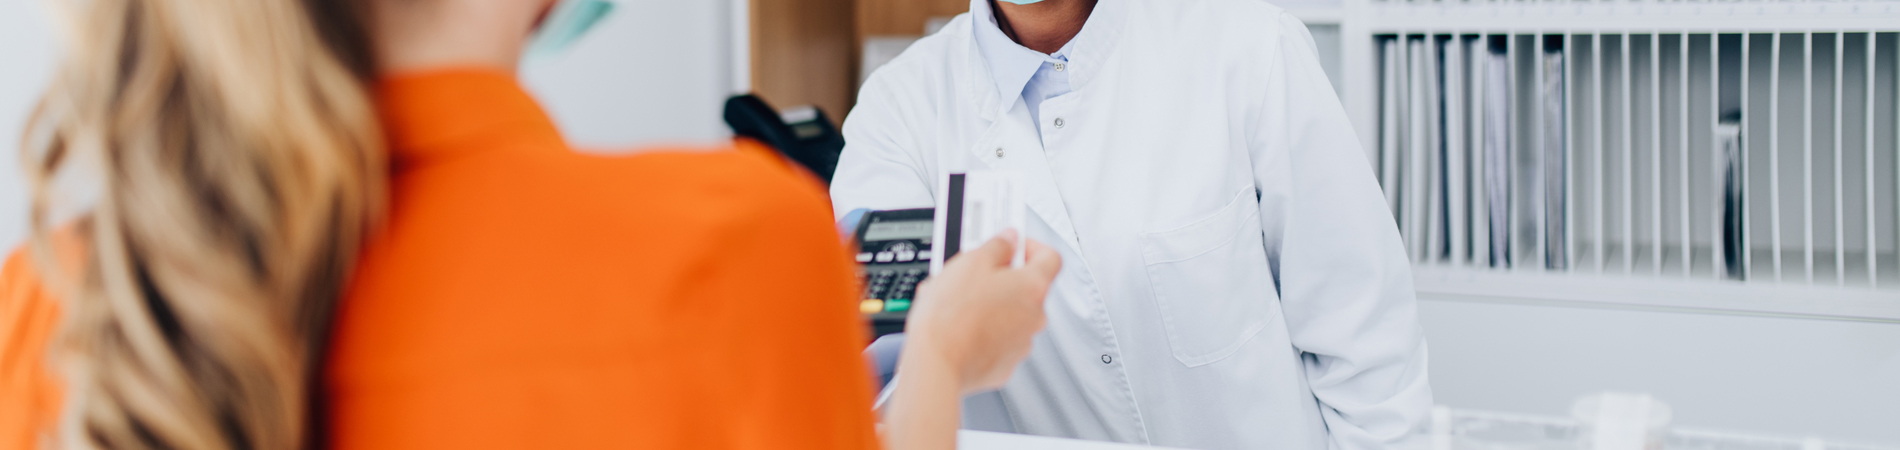 a woman using a payment processor to make a payment at a medical practice with a female practitioner